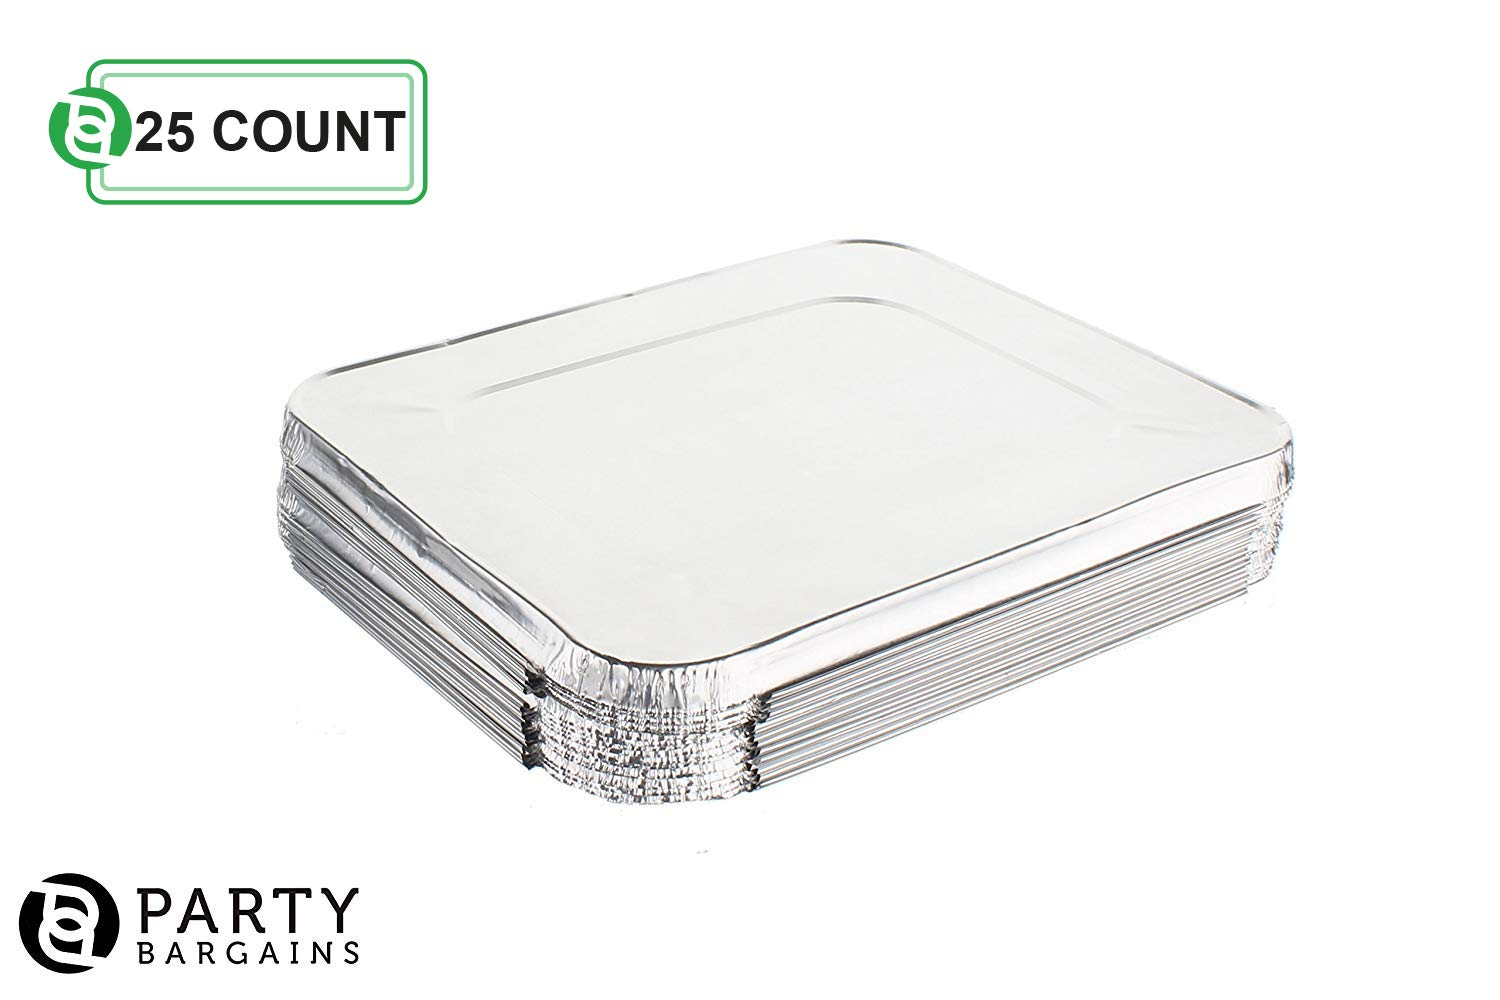 Aluminum Foil Pans   Disposable Pan Containers with Lids Set   Excellent for Broiling, Roasting, Grilling, Baking Cakes, Pies, Lasagna, More   9 x 13 Half Size Deep Steam Table Pans   25 Count by Party Bargains (Image #4)